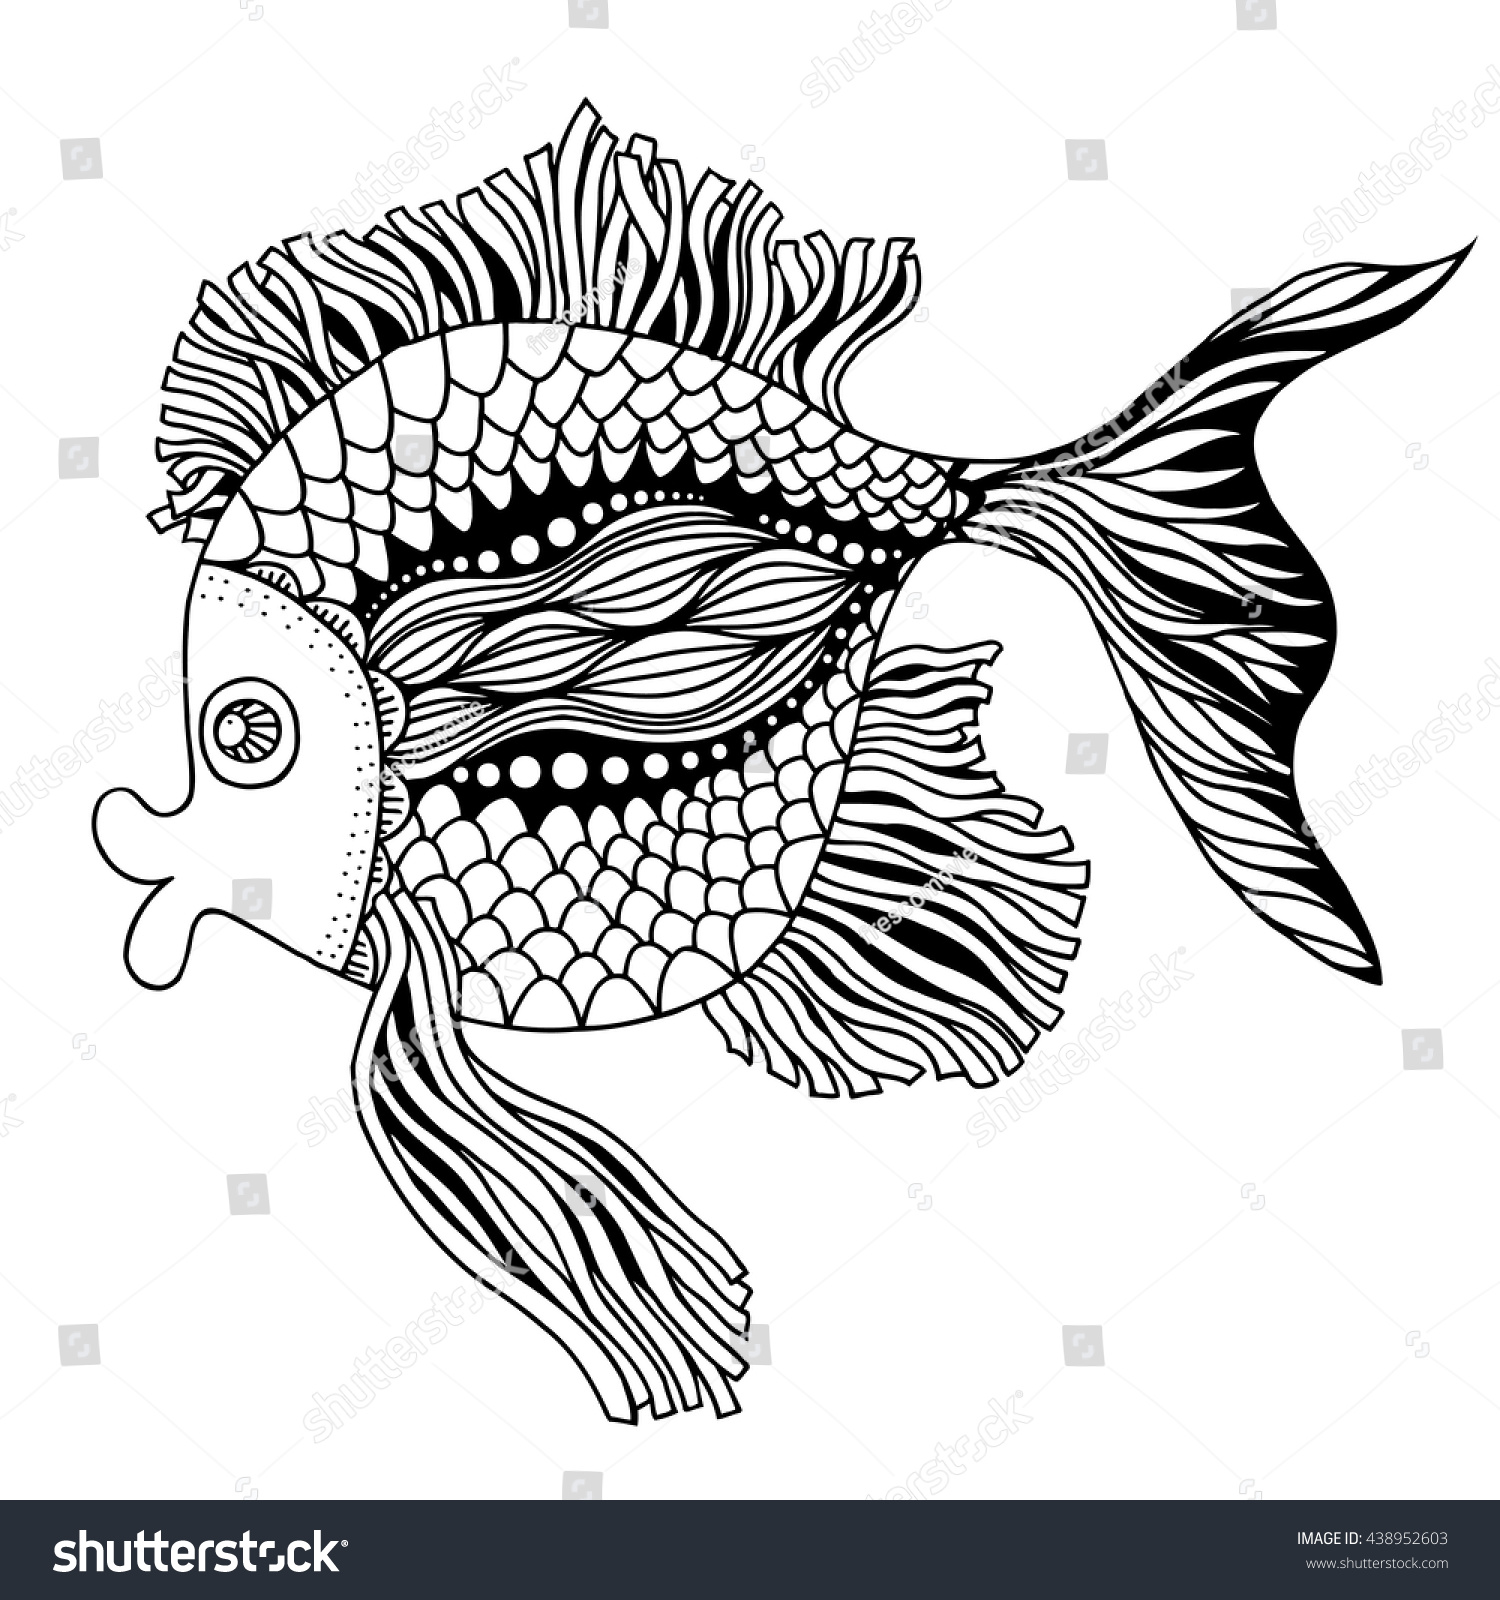 - Vector Hand Drawn Doodle Outline Fish Stock Vector (Royalty Free